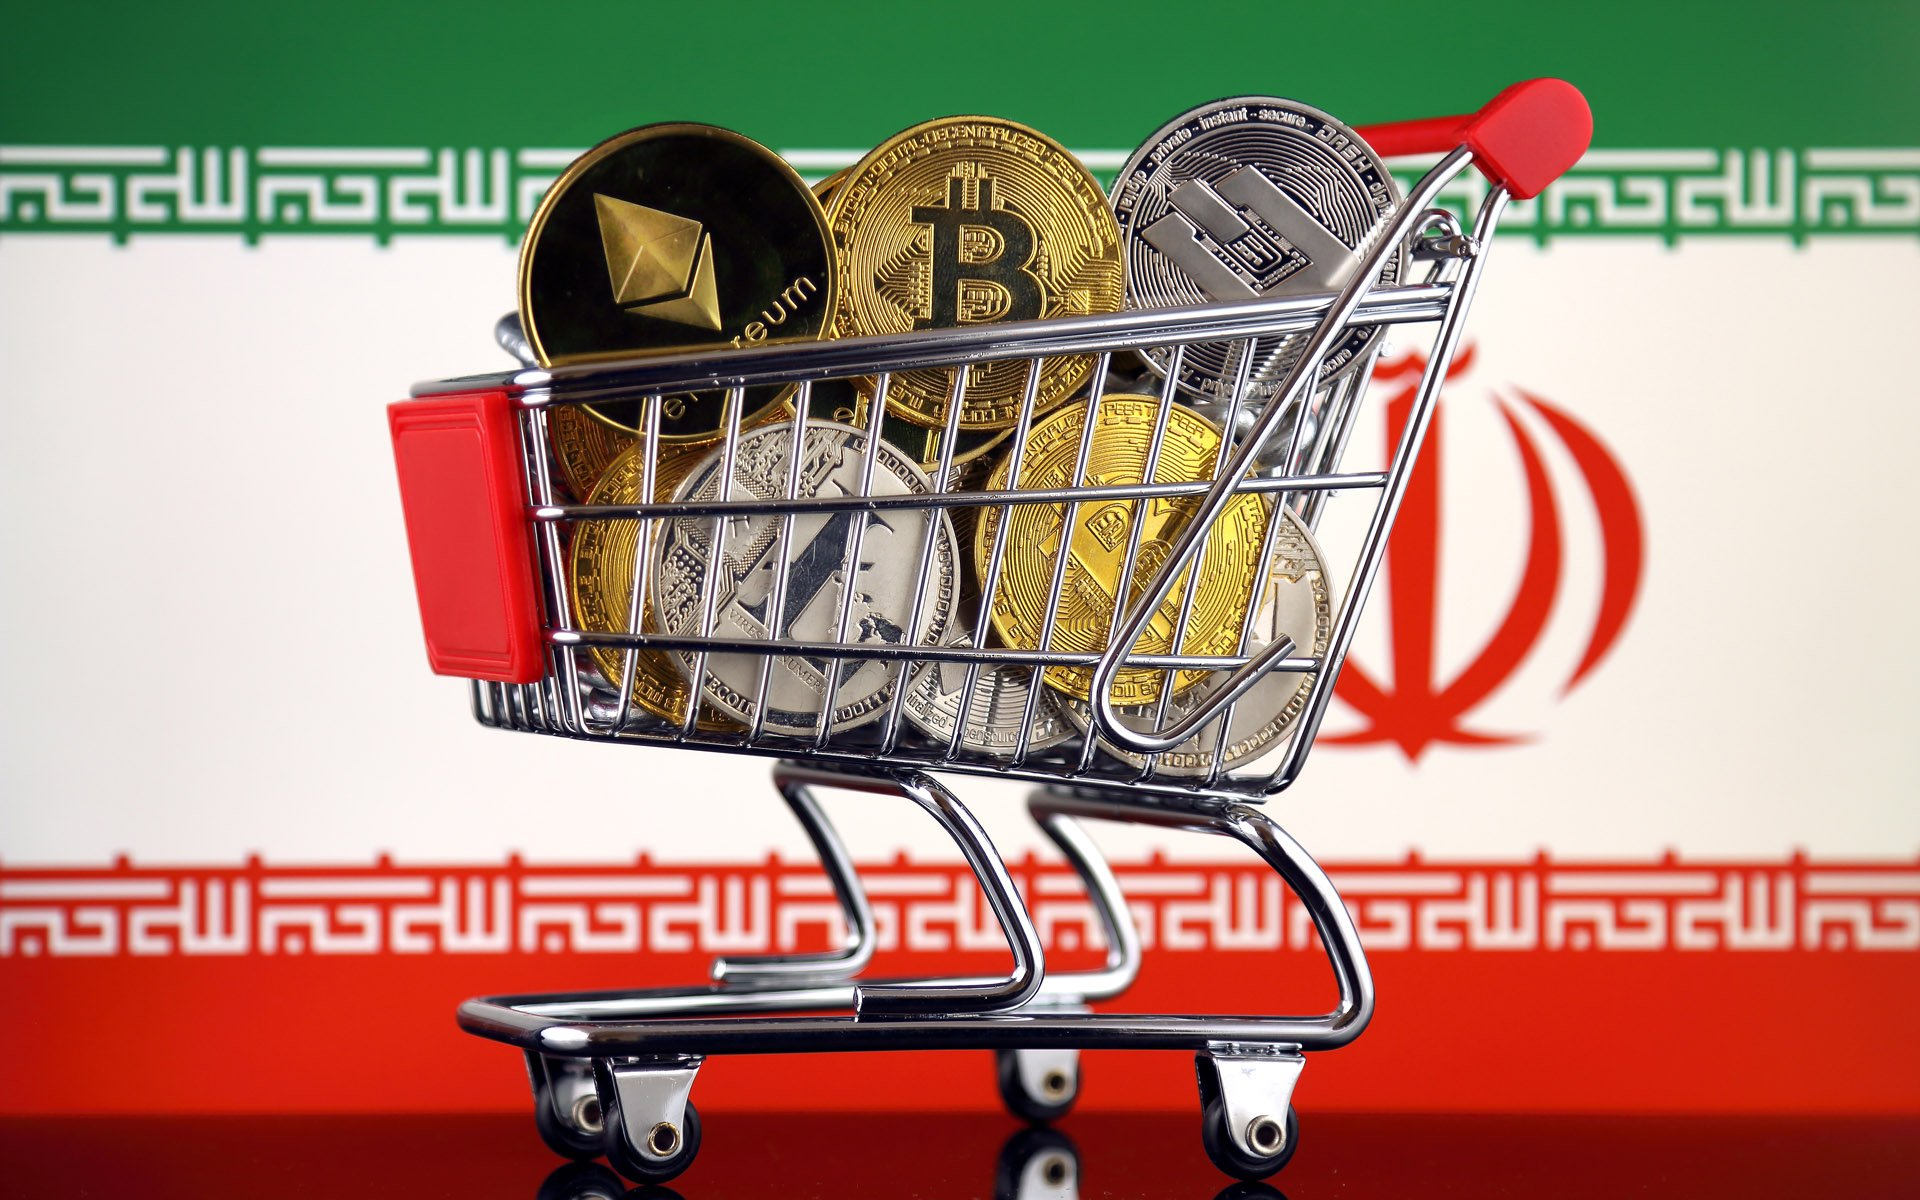 Russia and Iran May Use Cryptocurrencies to Bypass International Sanctions